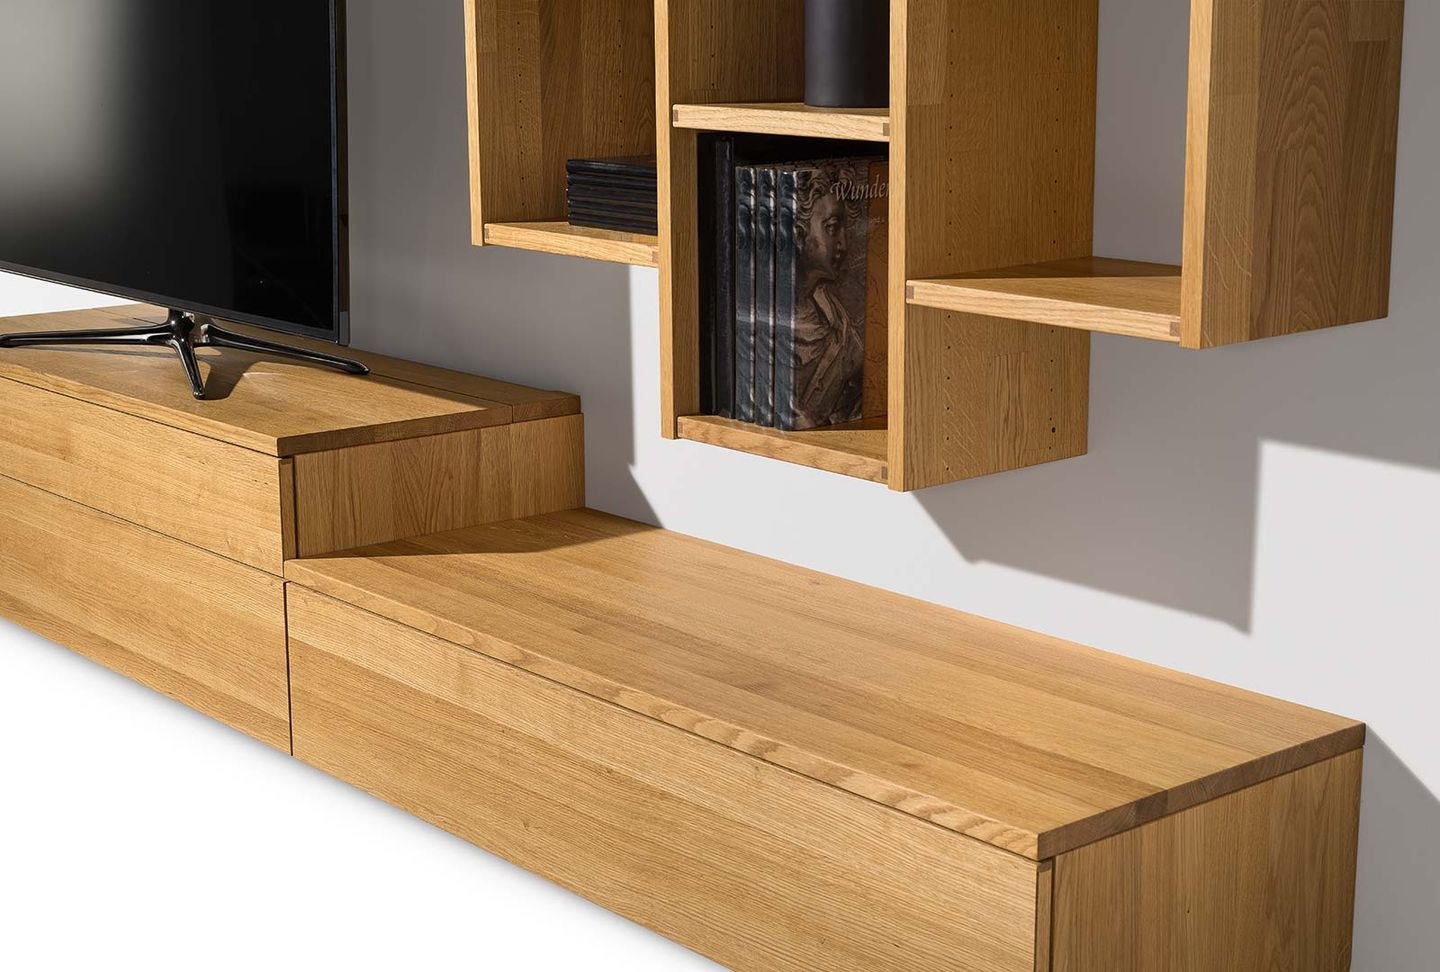 detail of cubus wall unit shelf system by TEAM 7